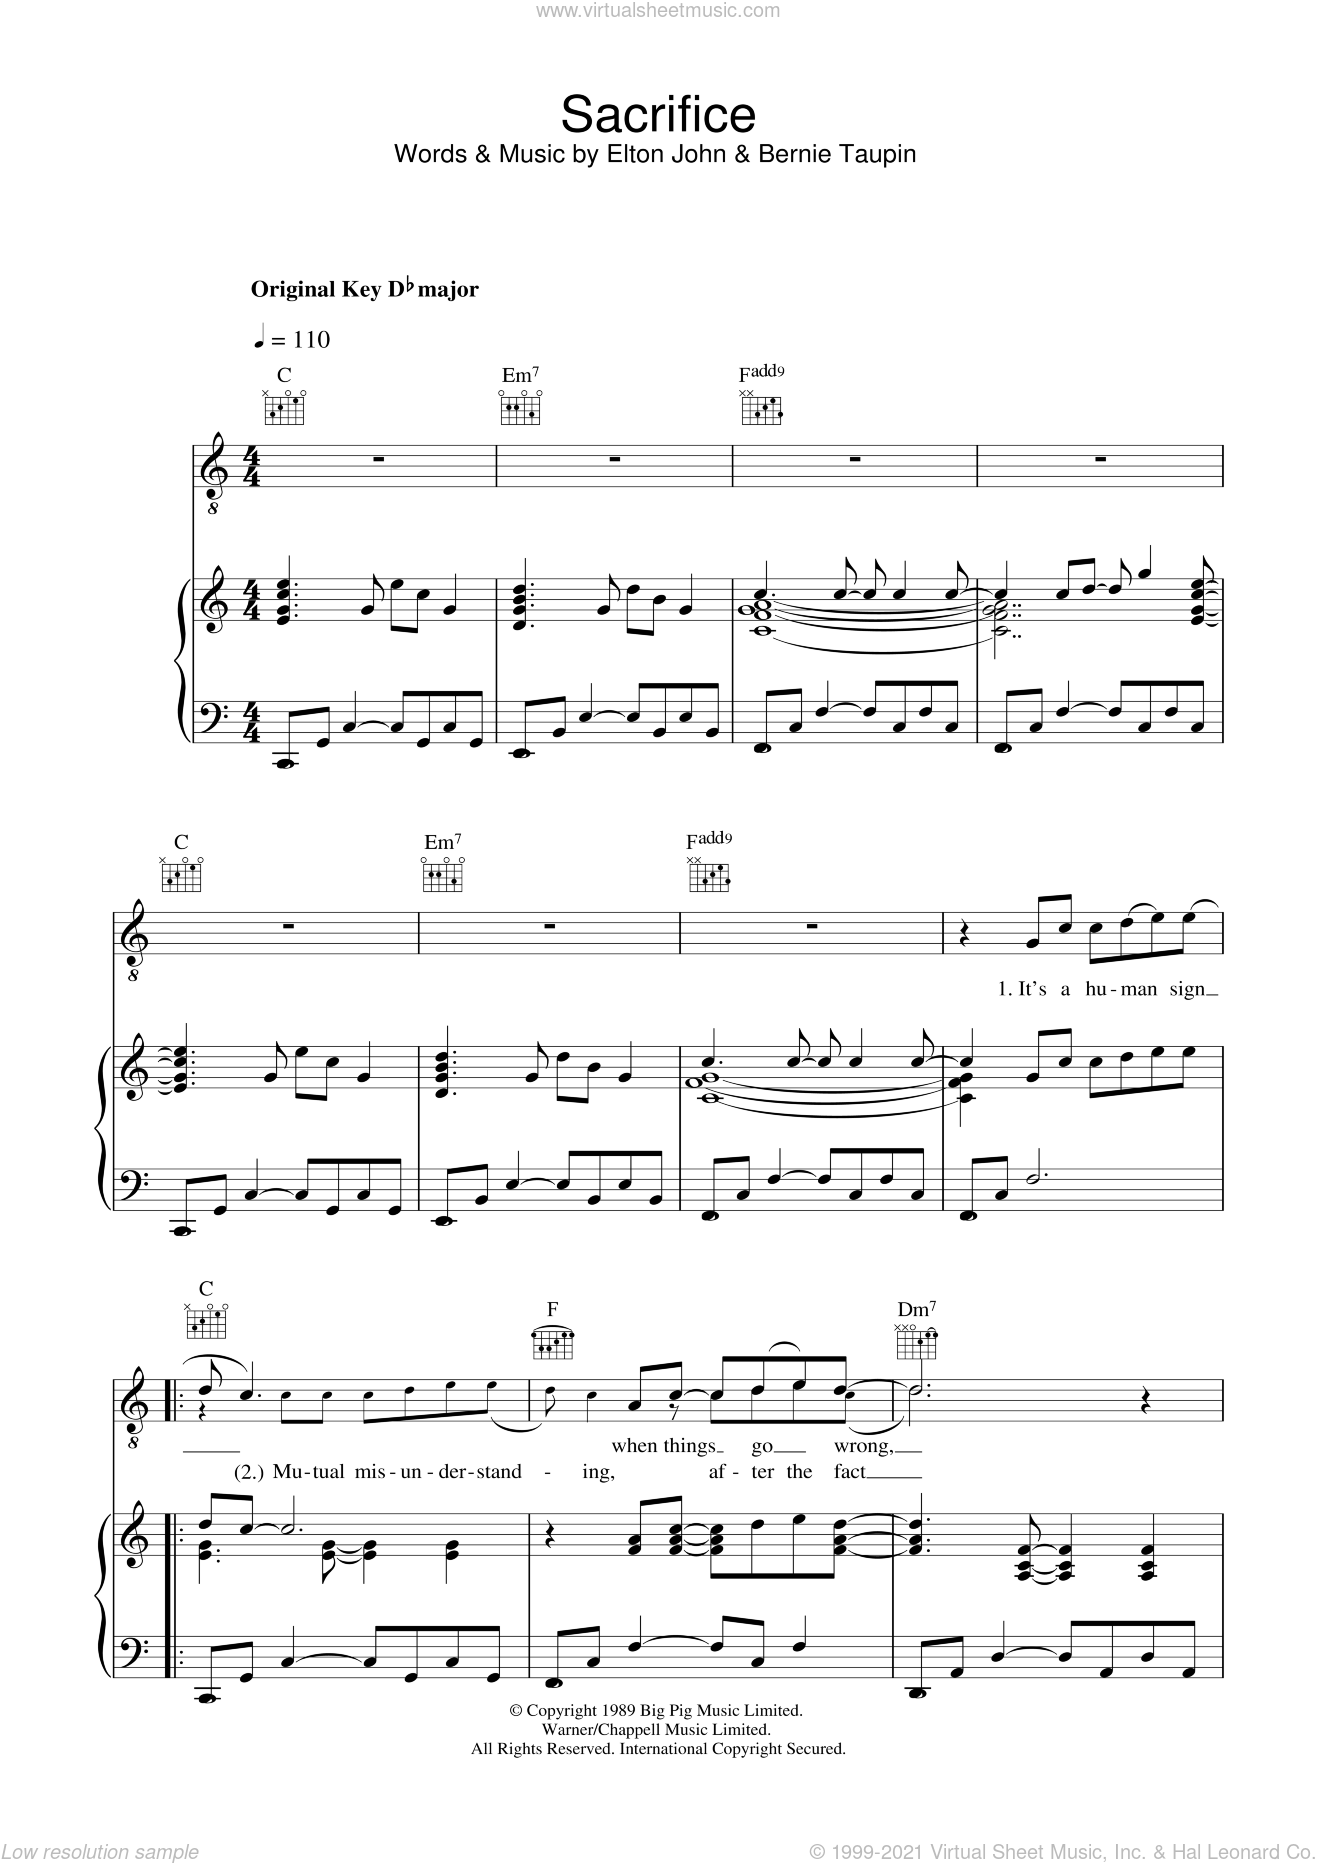 Sacrifice sheet music for voice, piano or guitar by Elton John and Bernie Taupin, intermediate skill level